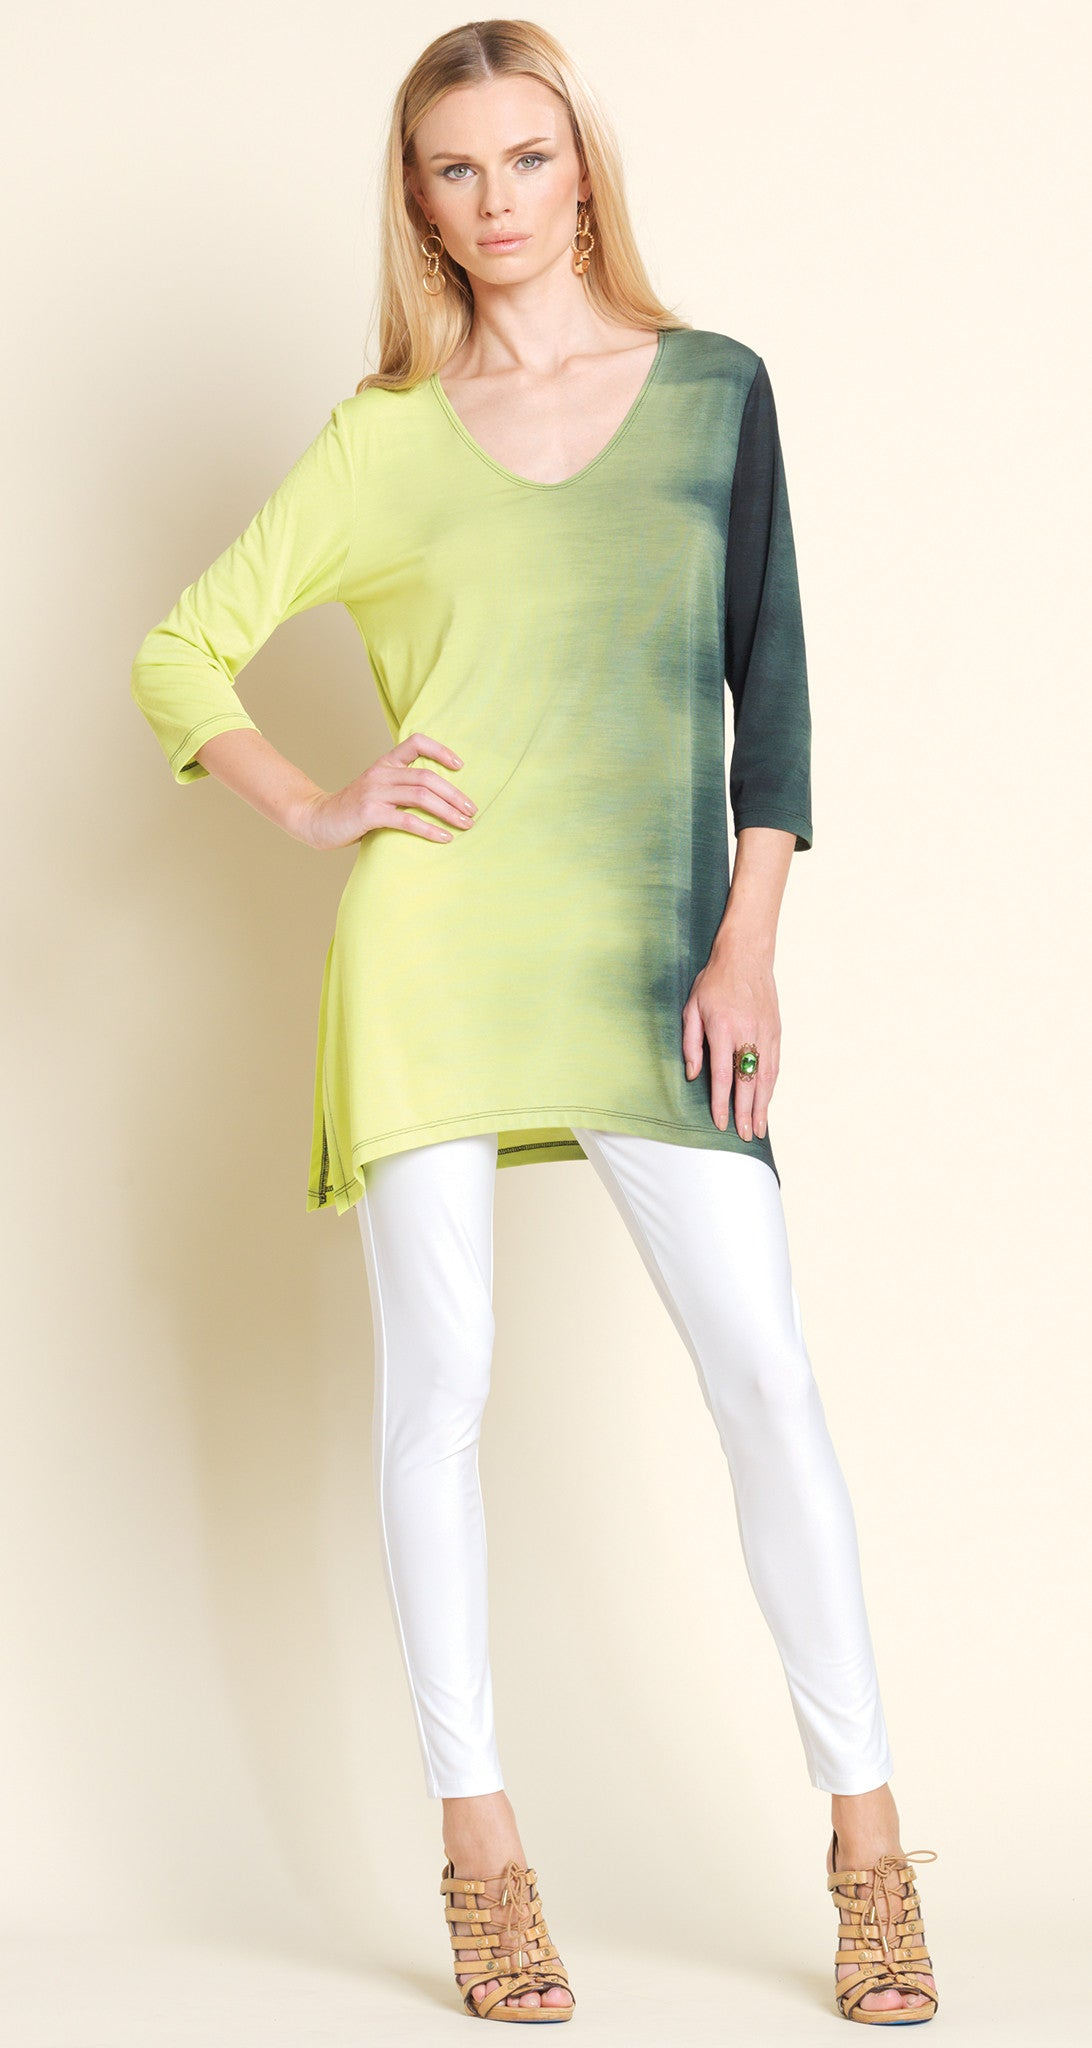 Ombre V-Neck Tunic - Lime - Final Sale!